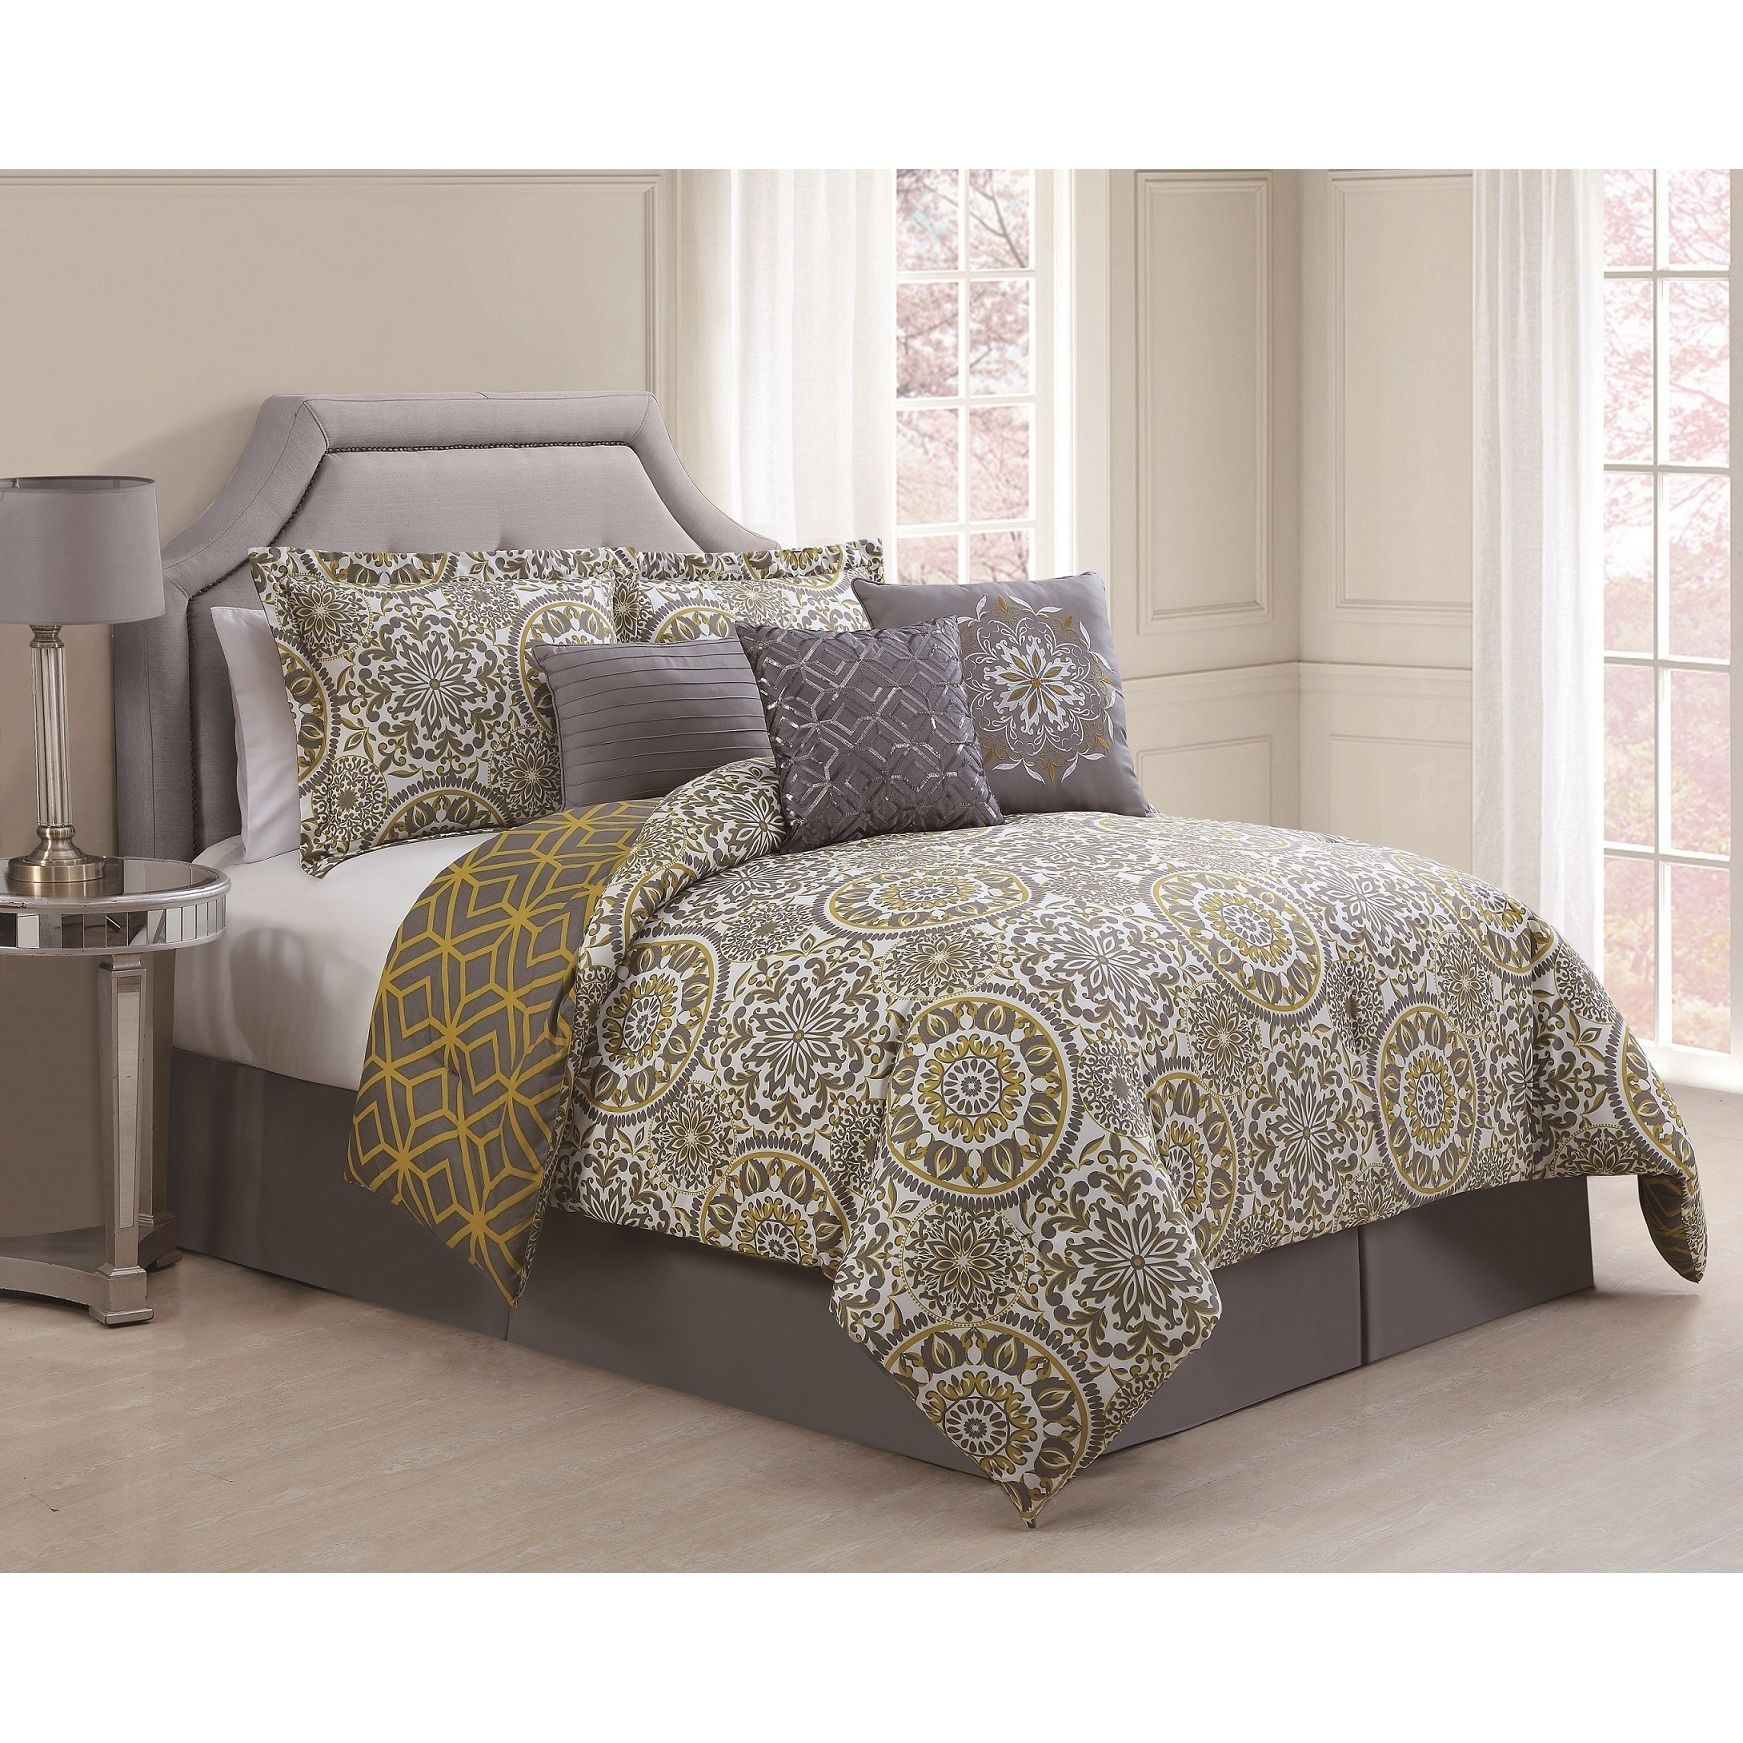 Dark gray and yellow bedding - Add A Simple Elegnace To Any Decor With This Stunning Grey And Yellow Seven Piece Comforter